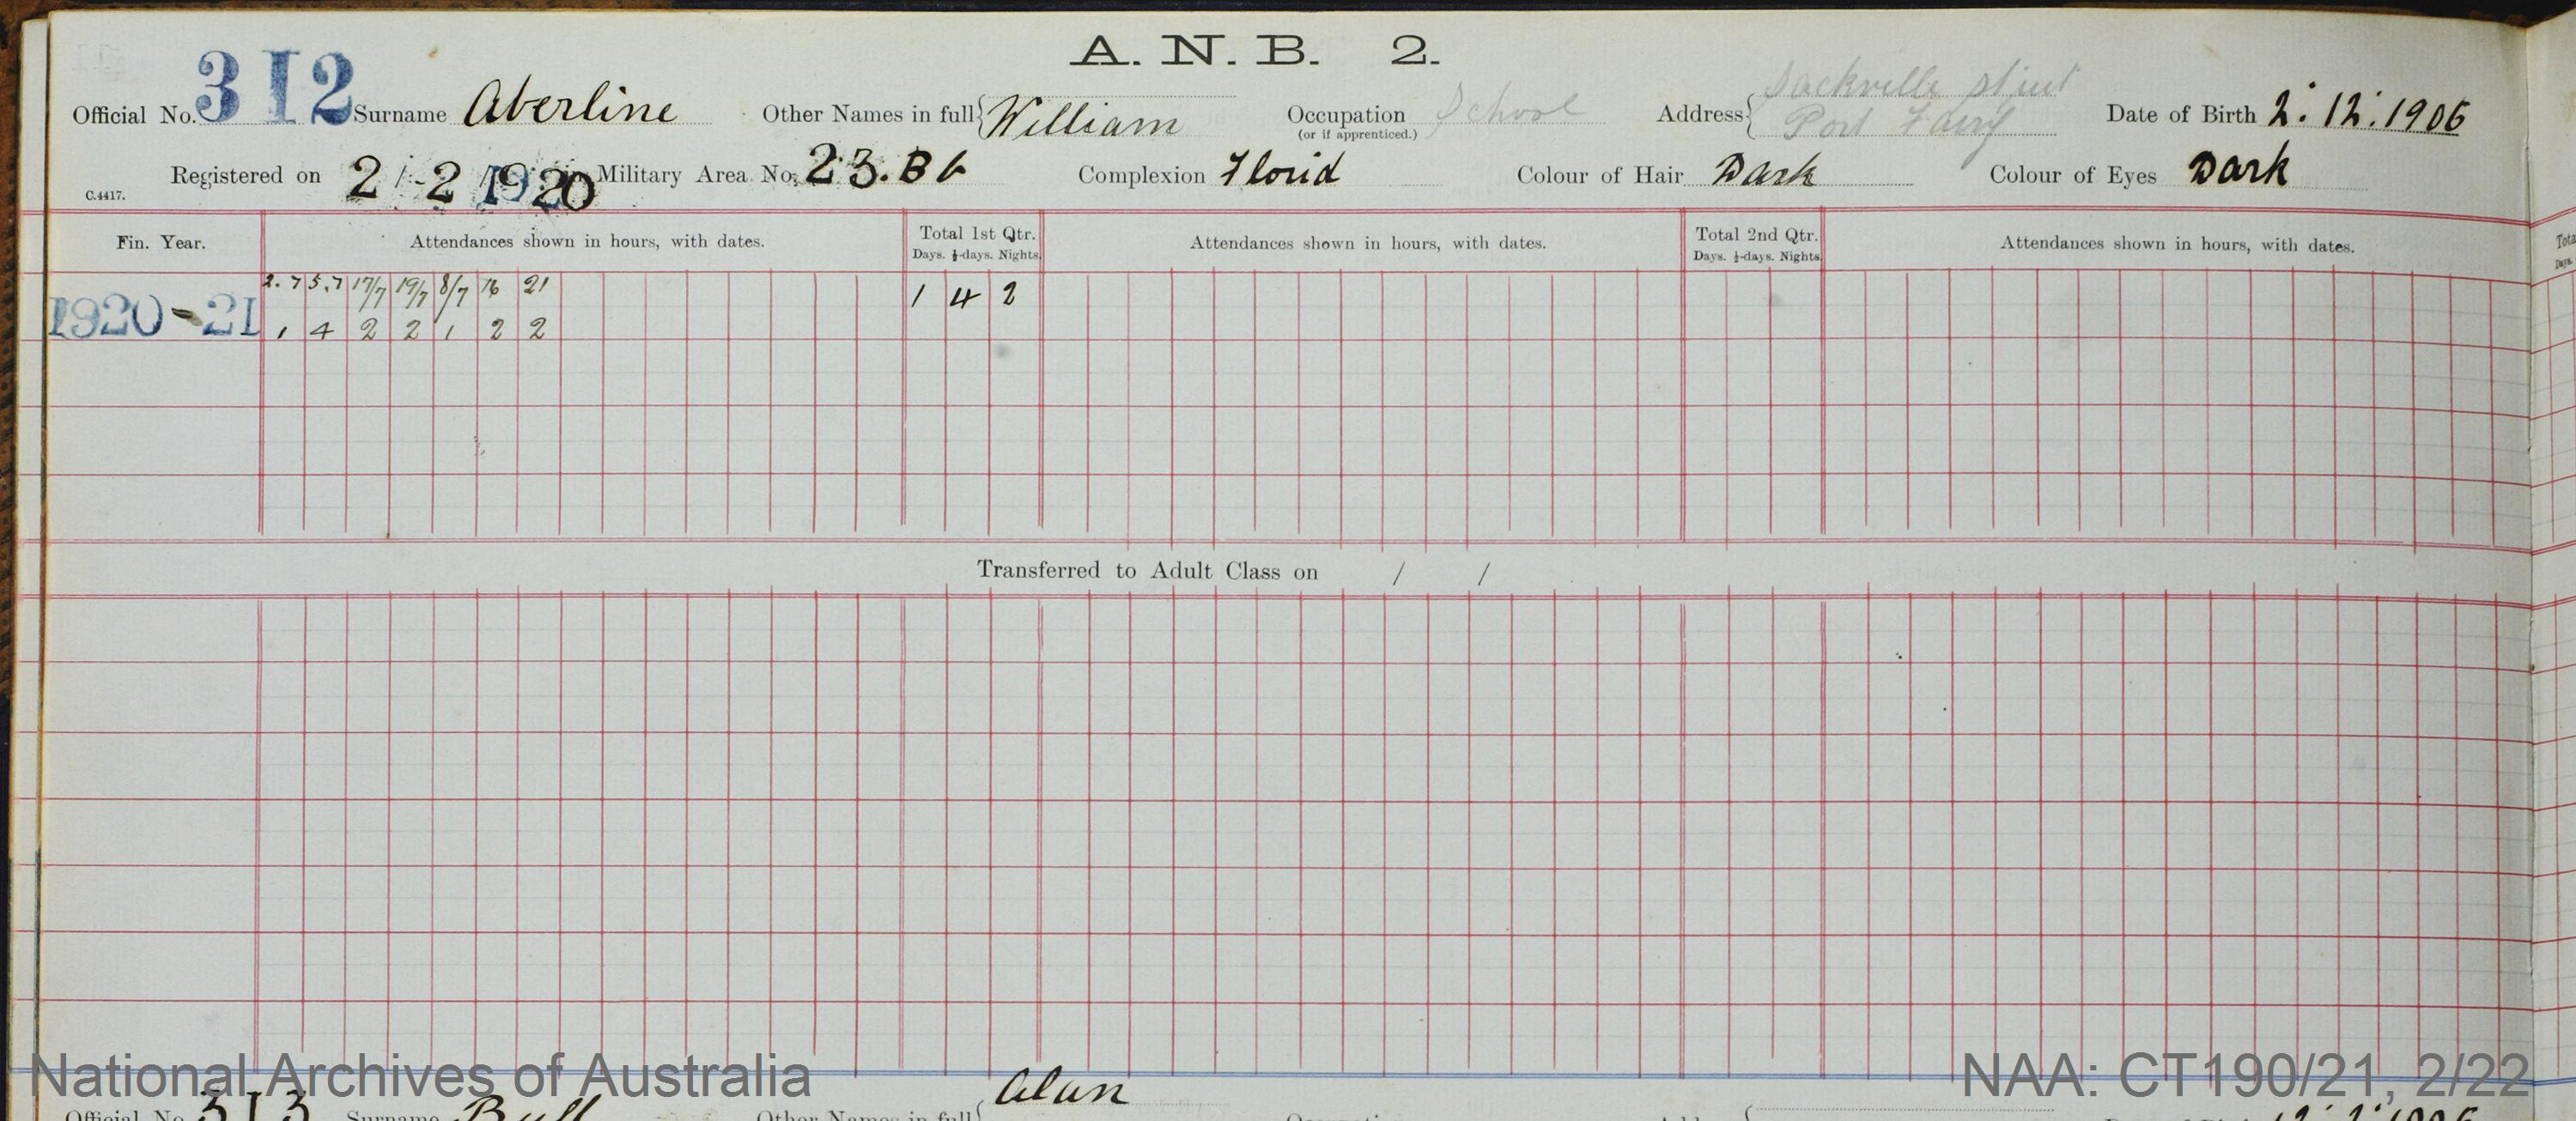 SURNAME - ABERLINE;  GIVEN NAME(S) - William;  OFFICIAL NUMBER - 312;  DATE OF BIRTH - 2 December 1906;  PLACE OF BIRTH - [Unknown];  NEXT OF KIN - [Unknown] ;  SERVICE/STATION - Port Fairy;  REGISTRATION DATE - 2 February 1920